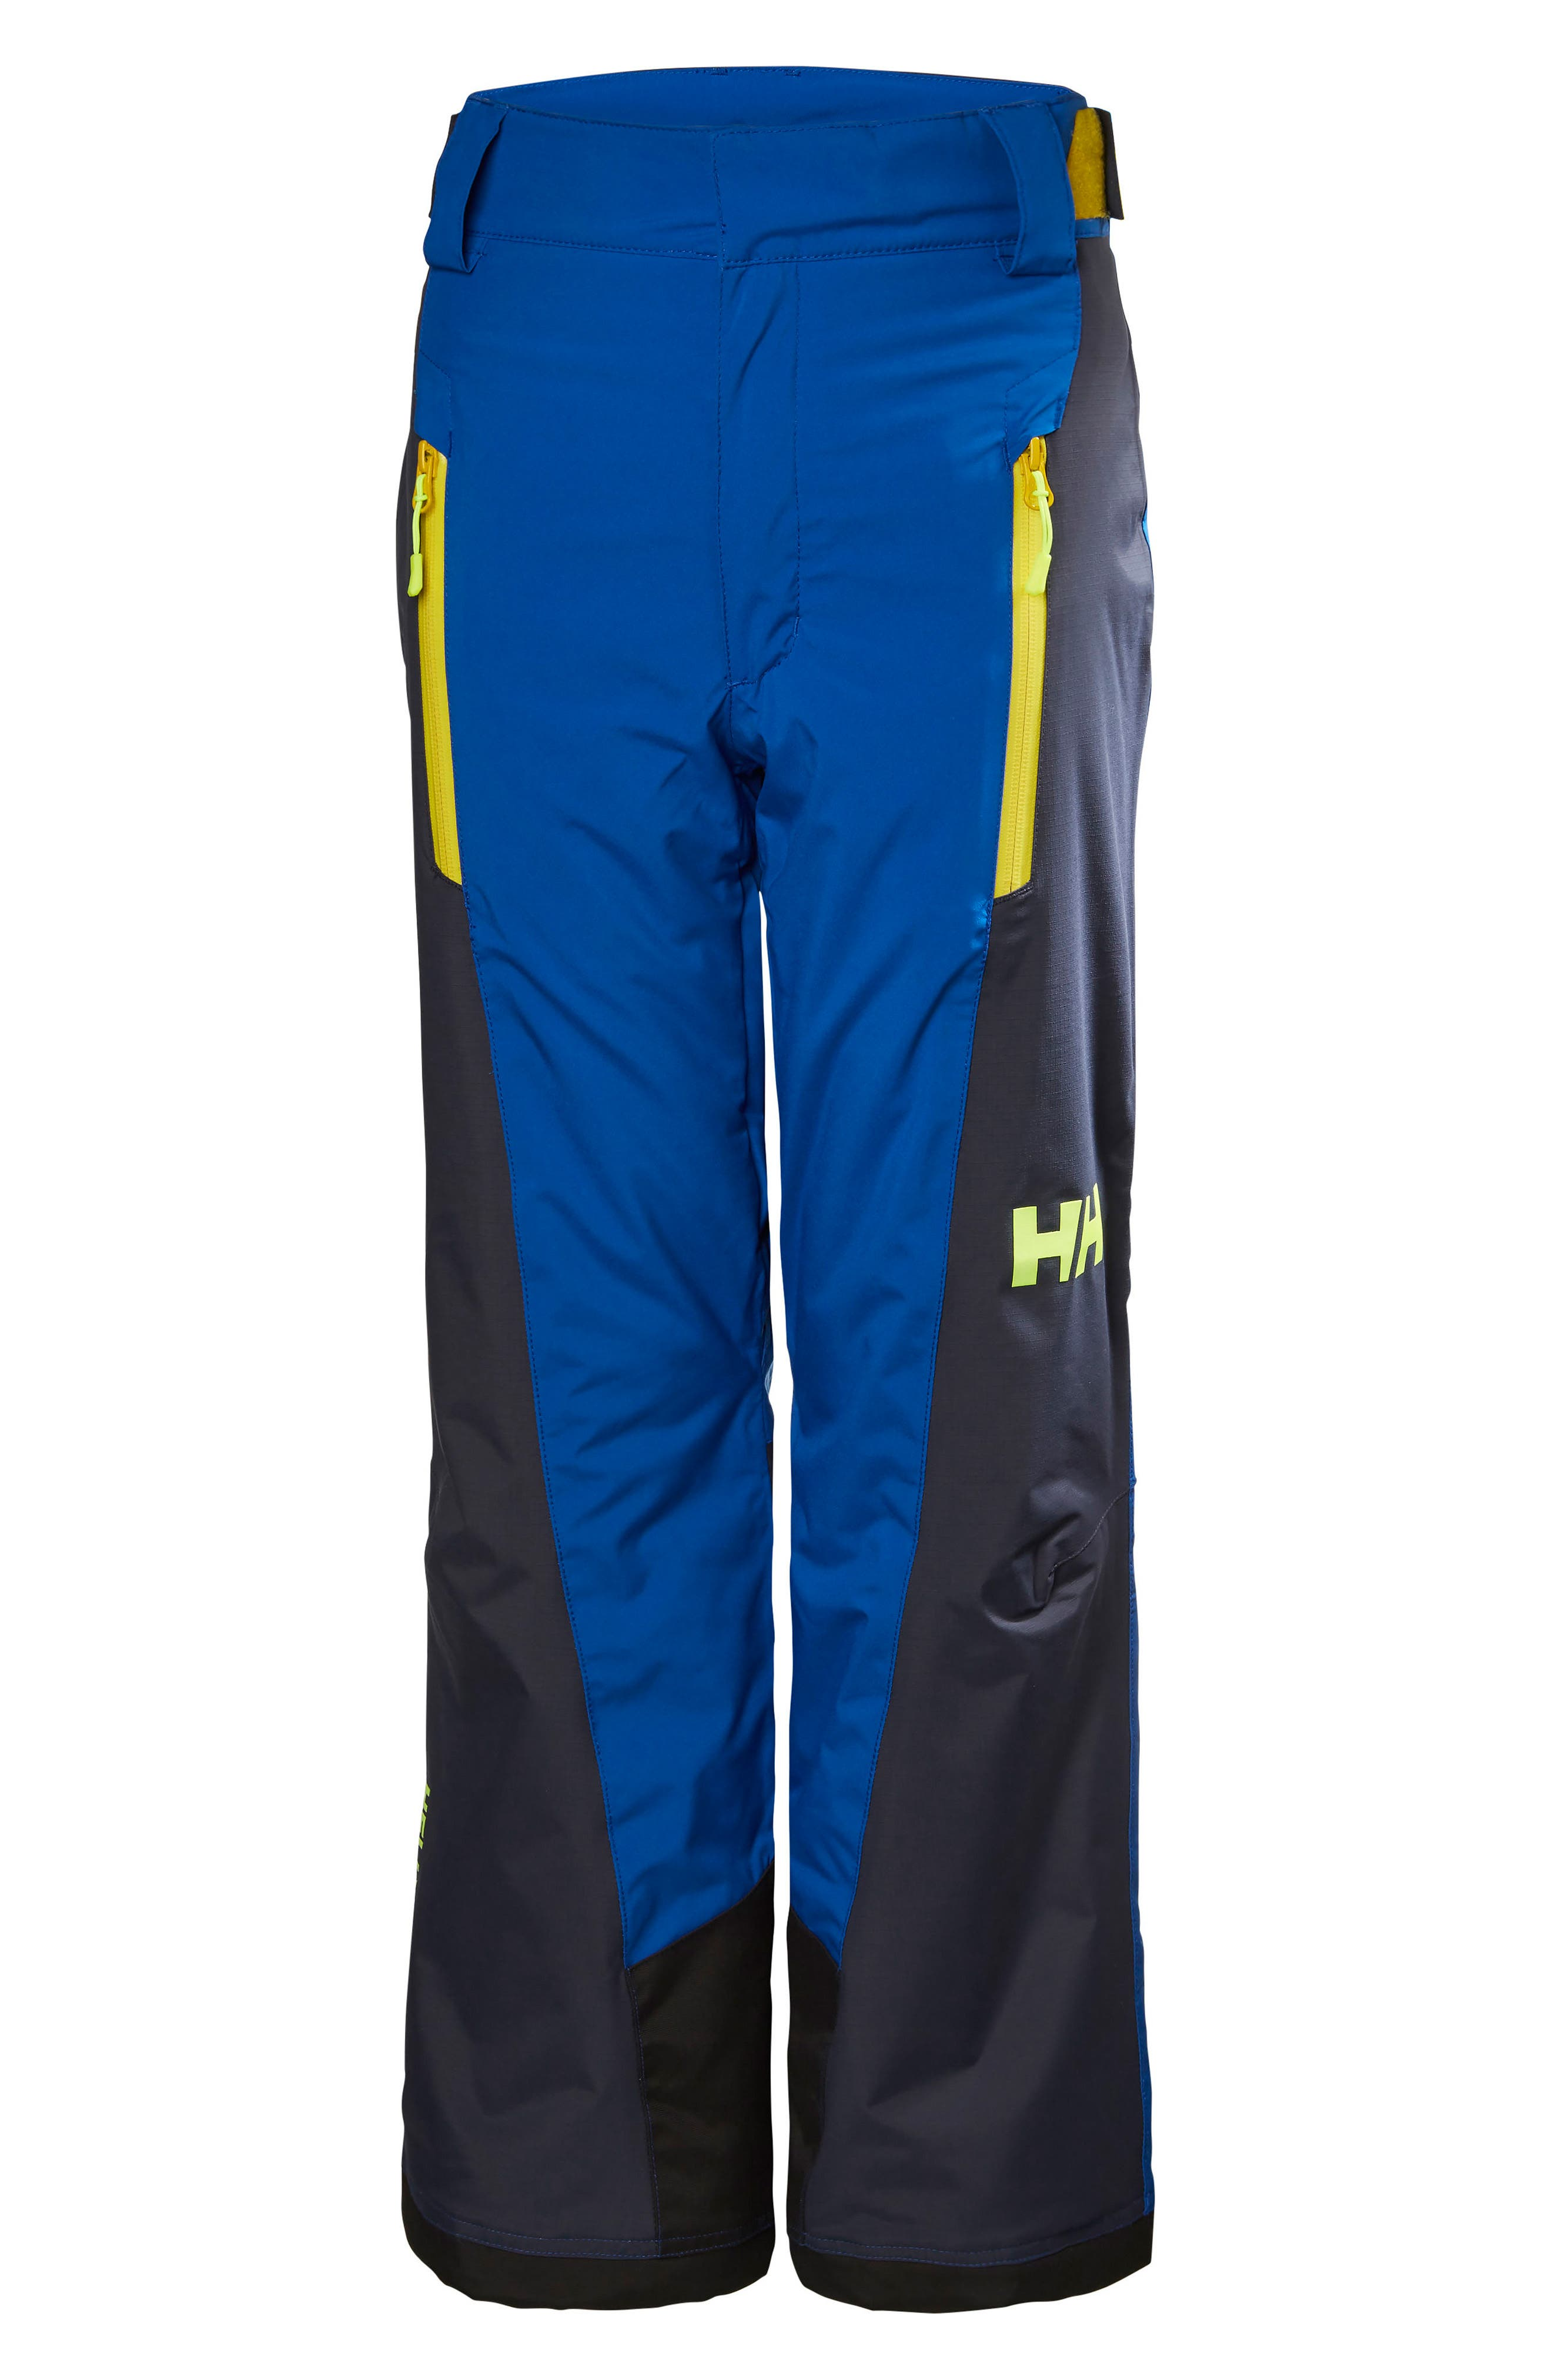 Main Image - Helly Hansen Jr Barrier Waterproof Snow Pants (Big Boys)